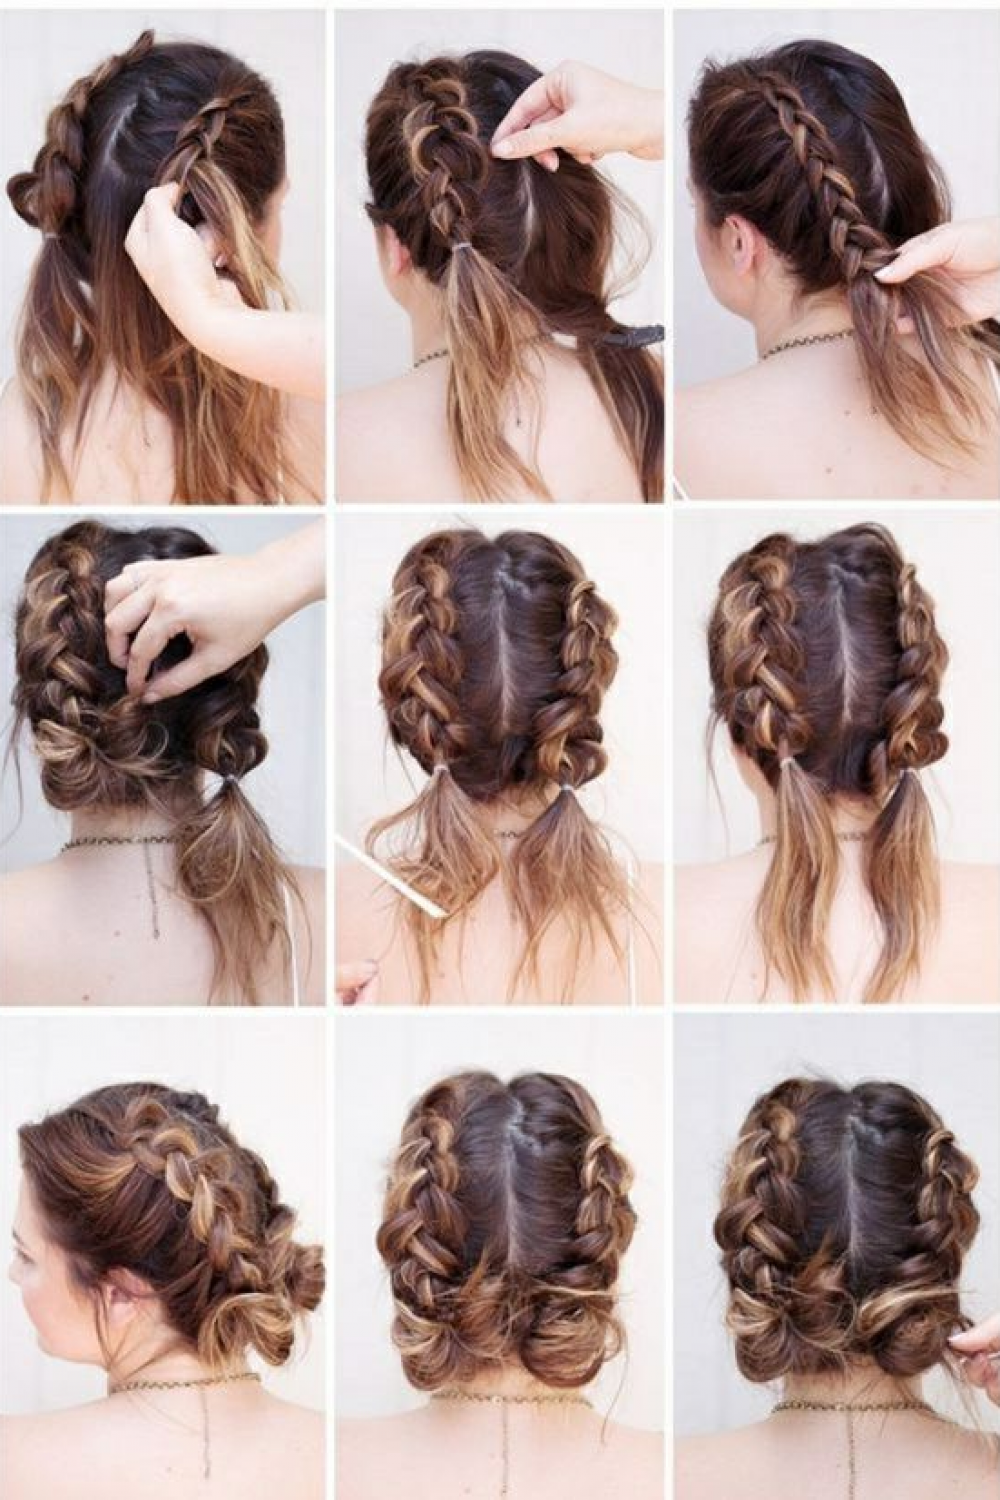 20 Easy Tips For Braided Hairstyles Tutorials Designs Hair Styles Long Hair Styles Easy Hairstyles